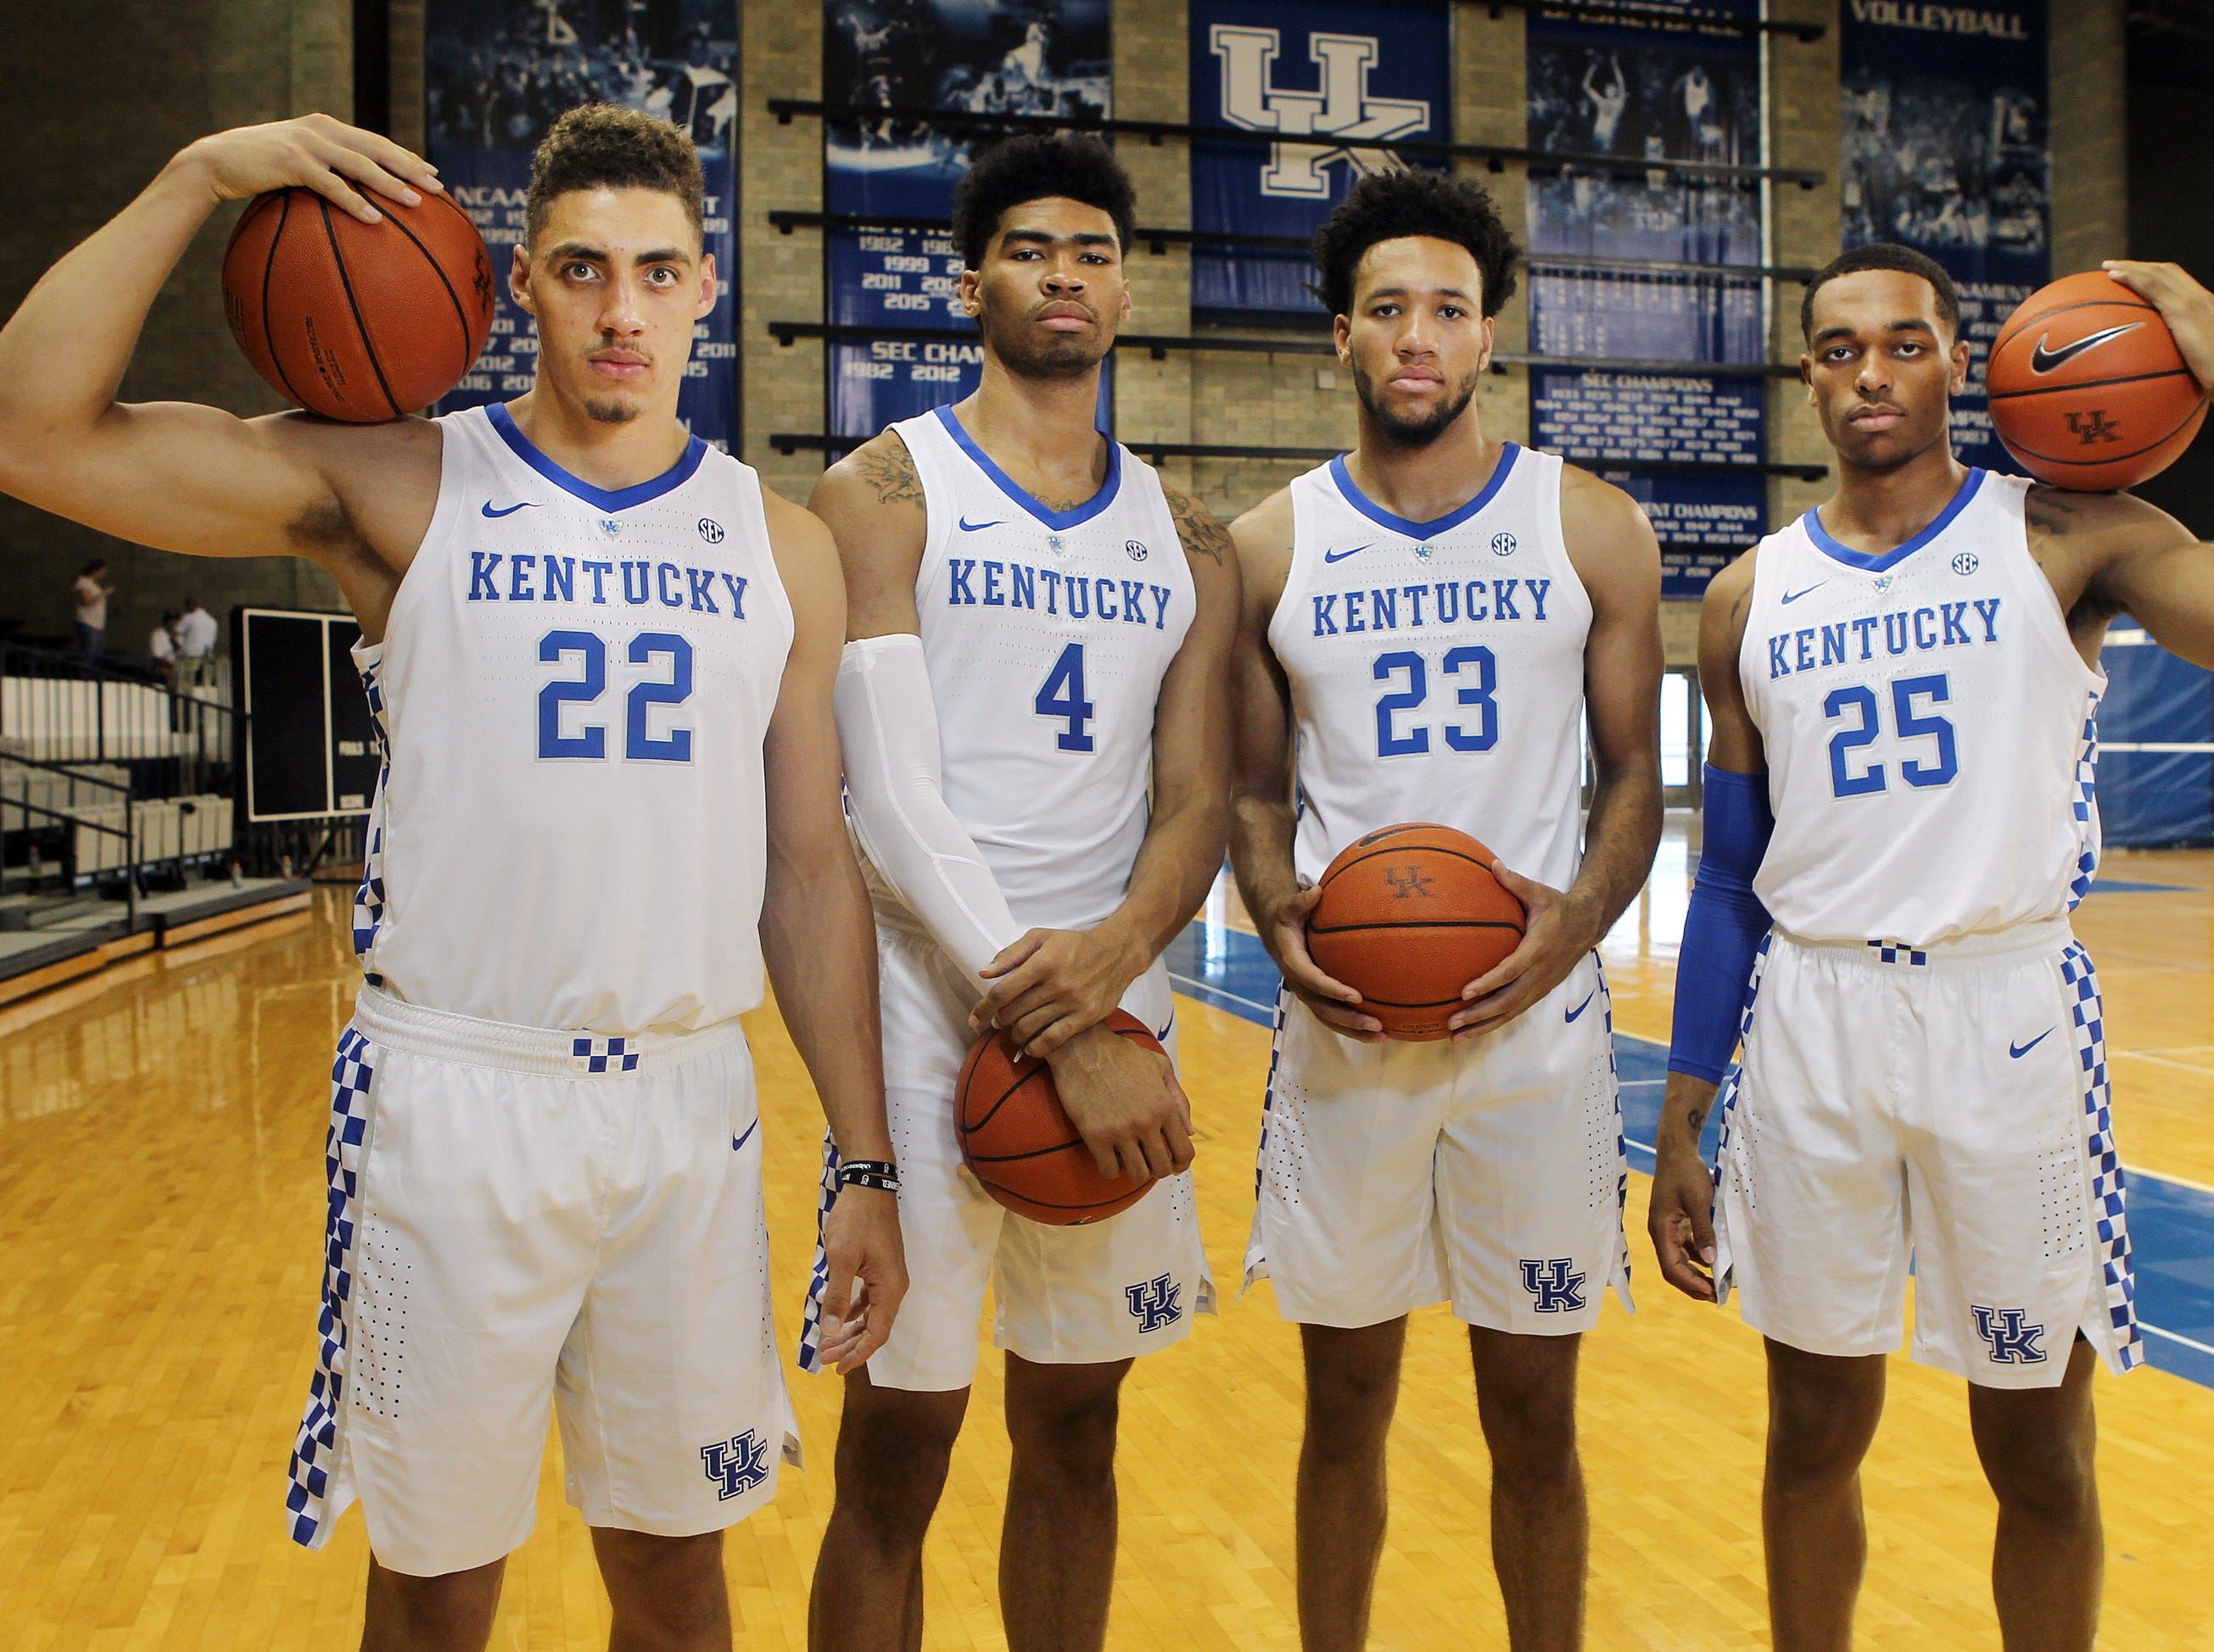 Kentucky big men Reid Travis (22), Nick Richards (4), EJ Montgomery (23) and Pj Washington pose during the teams picture day in Memorial Coliseum on campus. Sep. 20, 2018